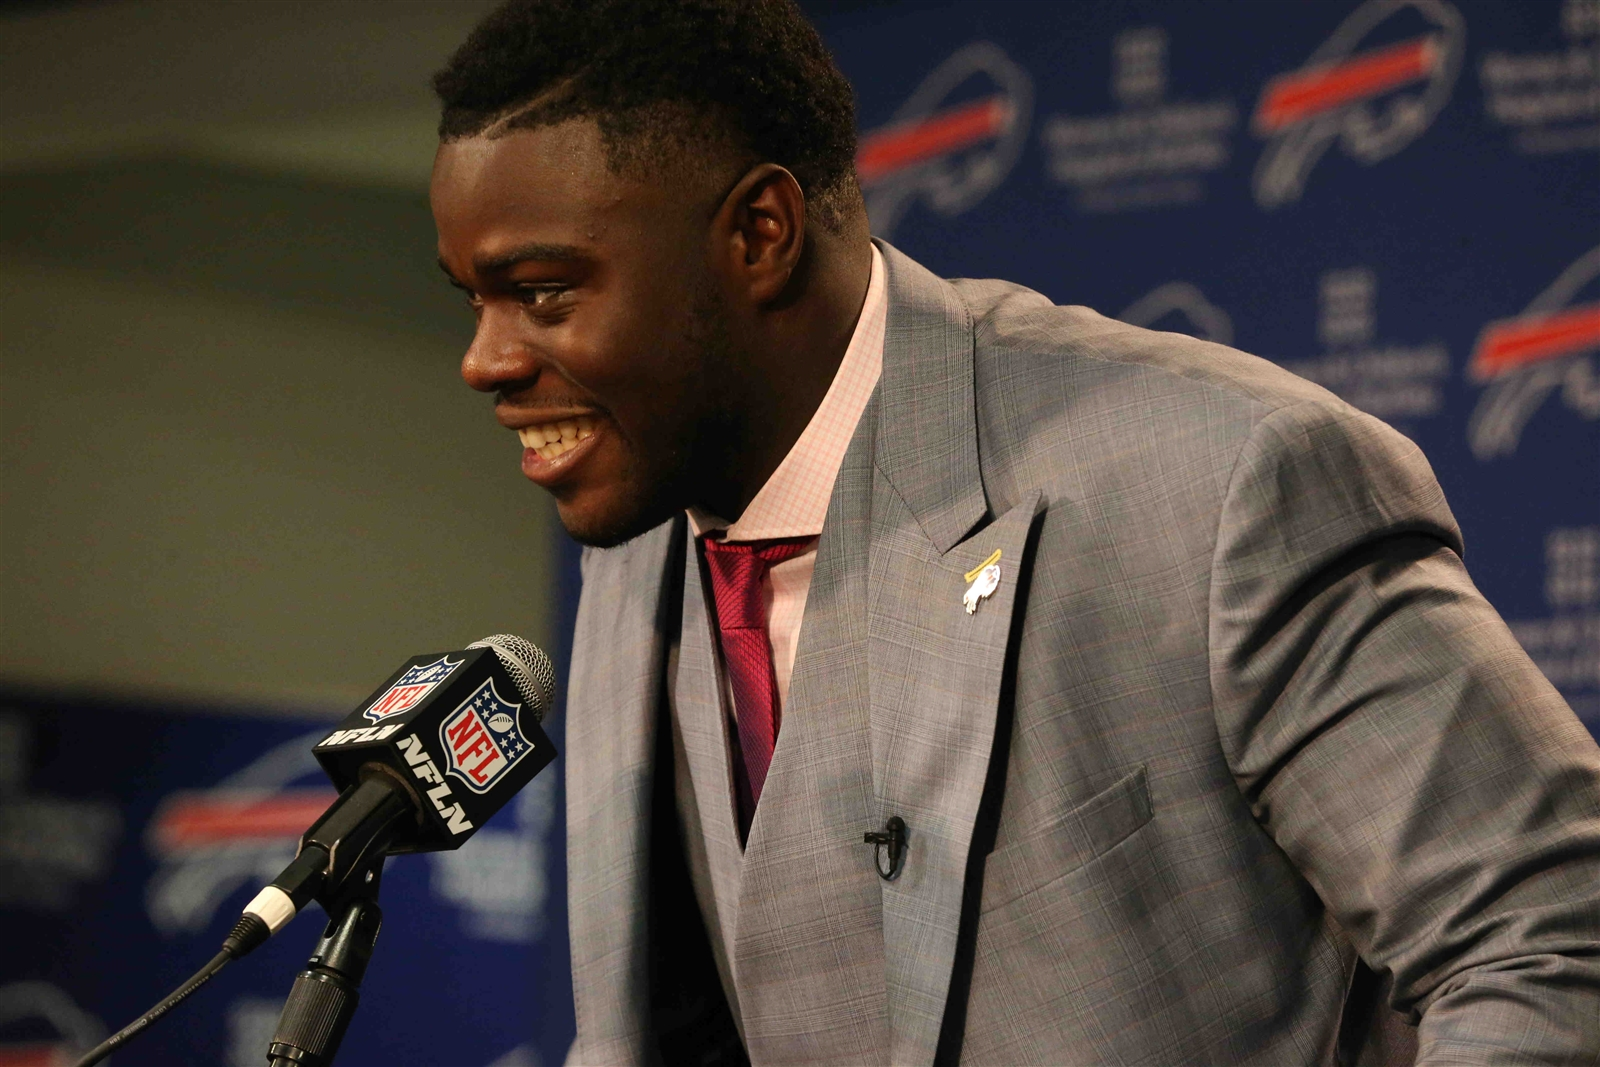 Bills first-round draft pick Shaq Lawson meets the media during his welcoming press conference. (James P. McCoy/Buffalo News)